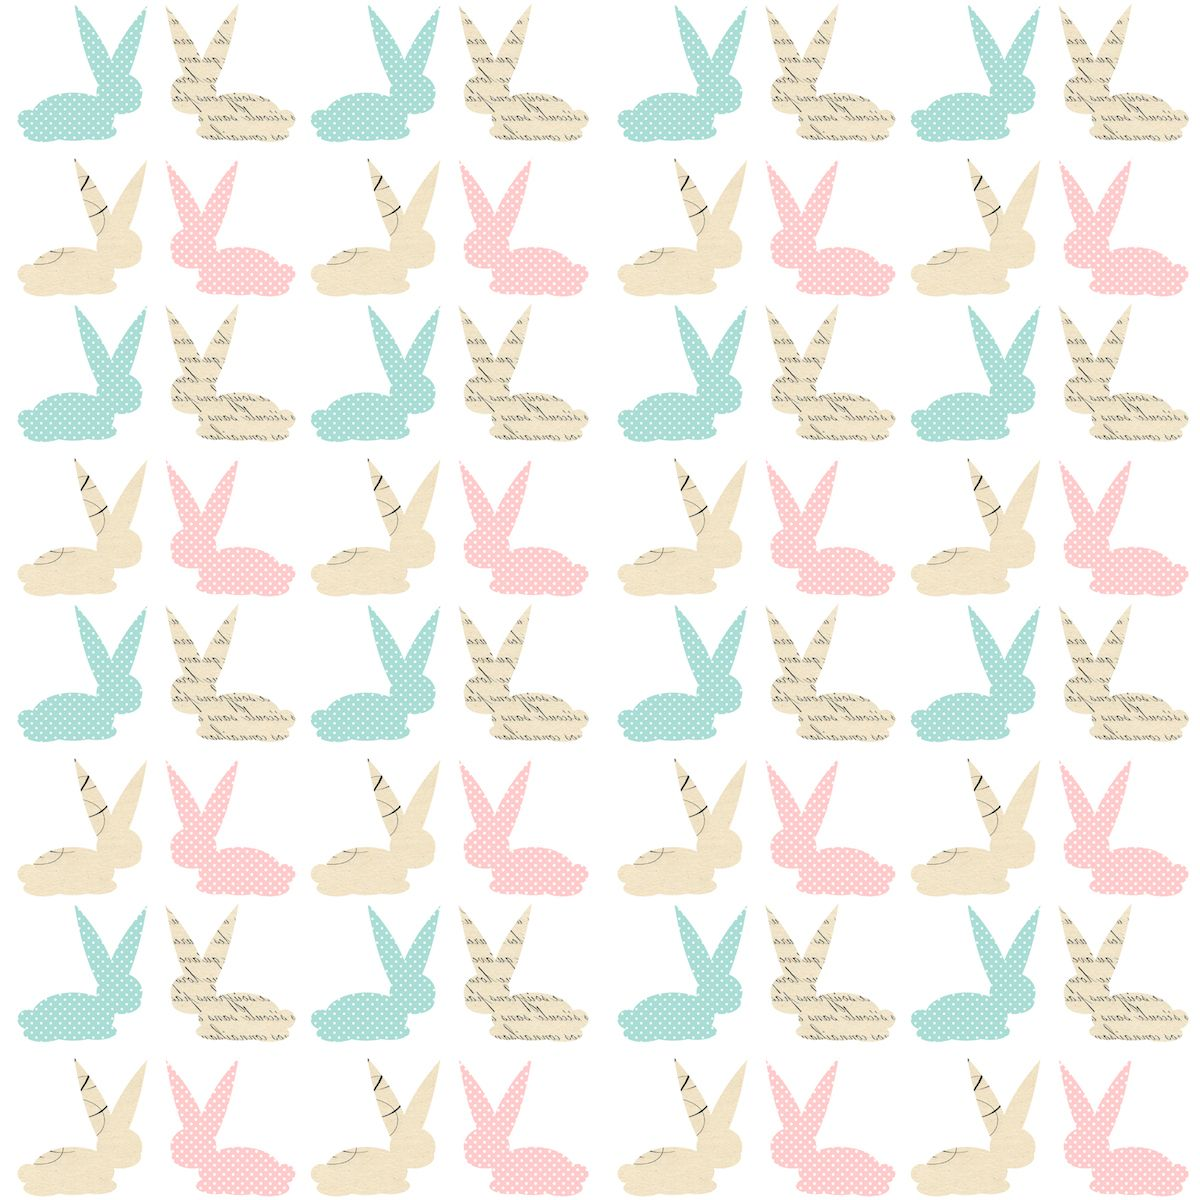 Meinlilapark Diy Printables And Downloads Free Digital Bunny